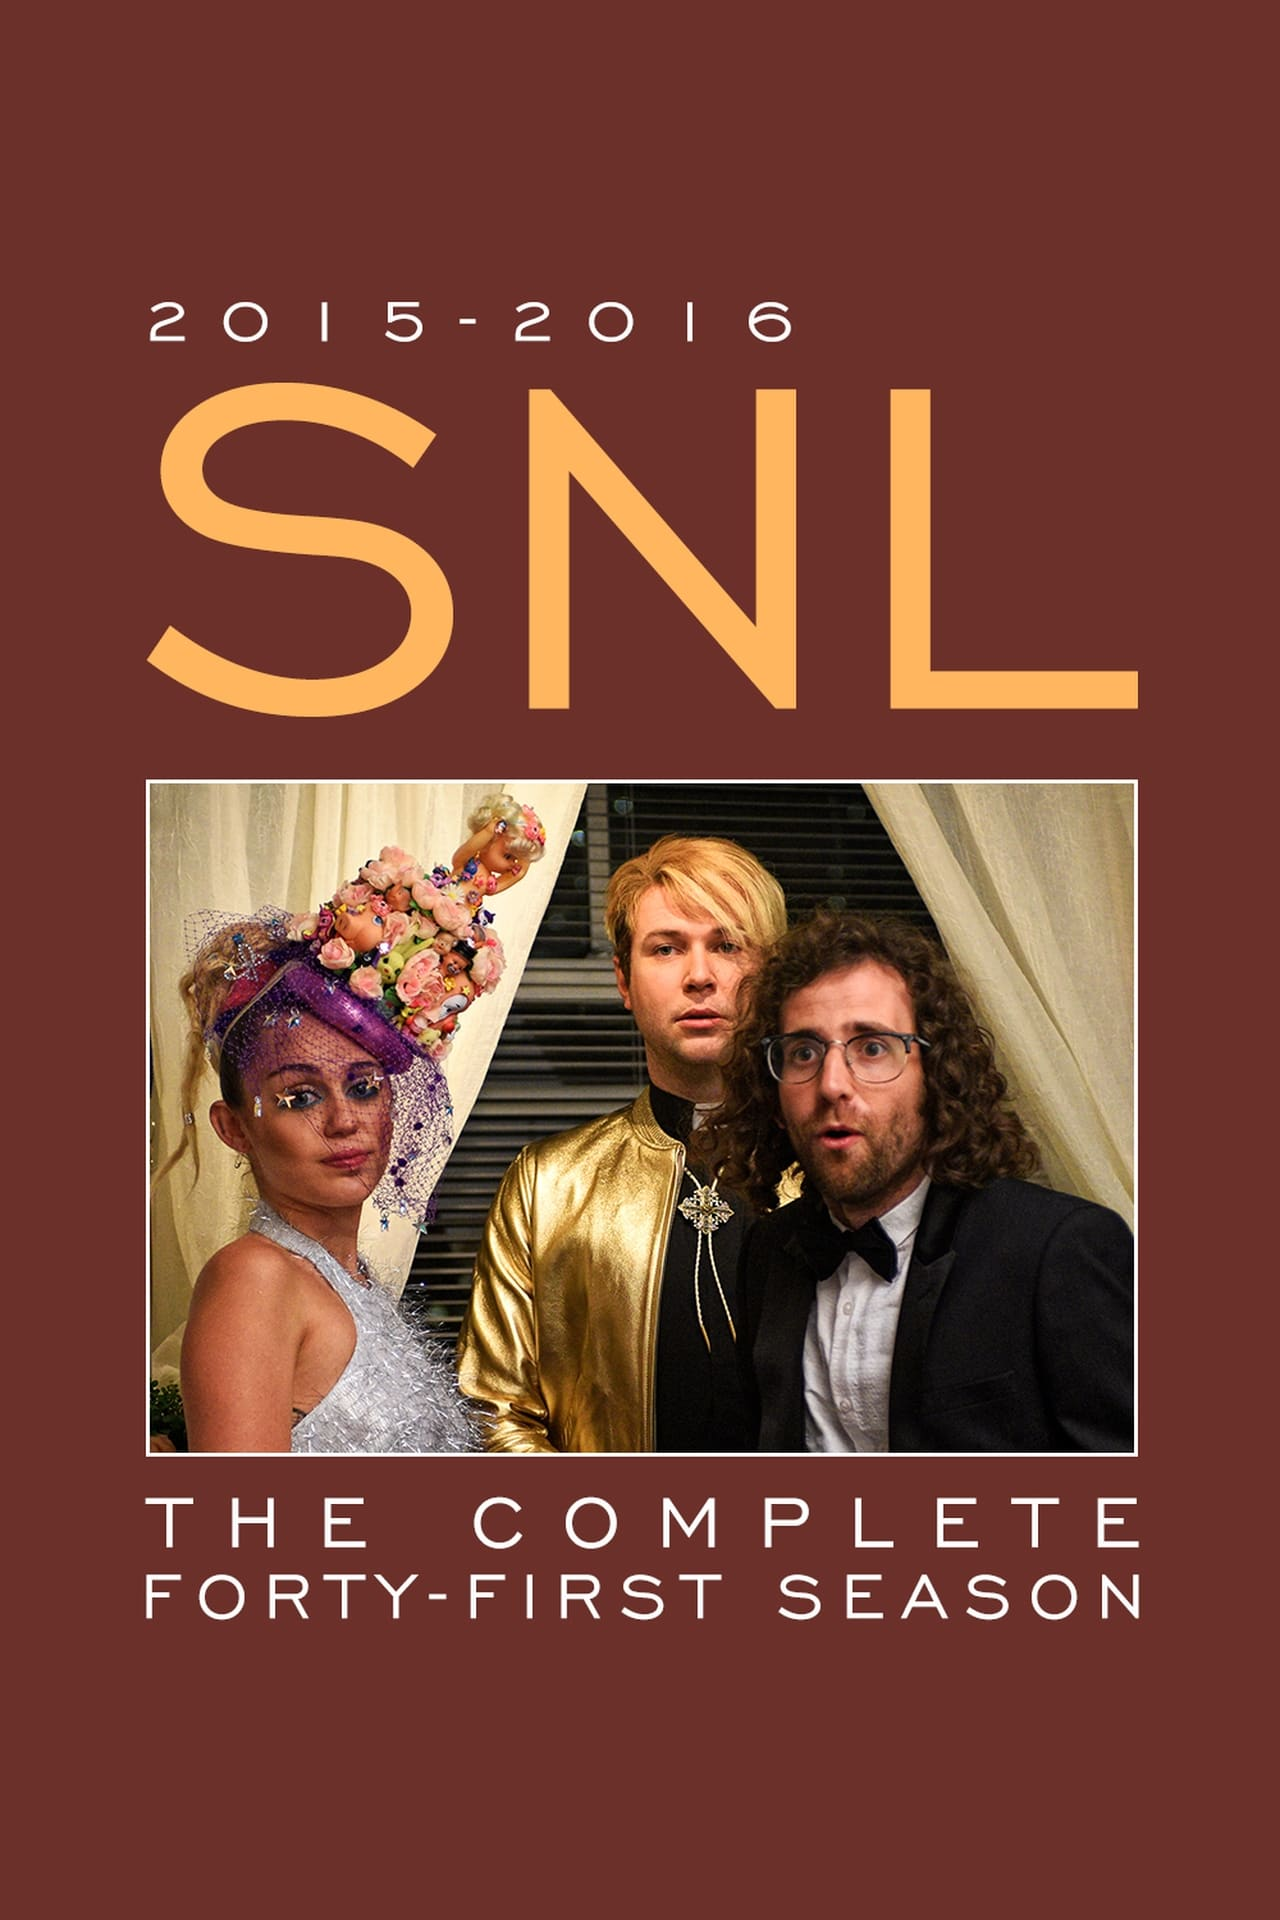 Saturday Night Live Season 41